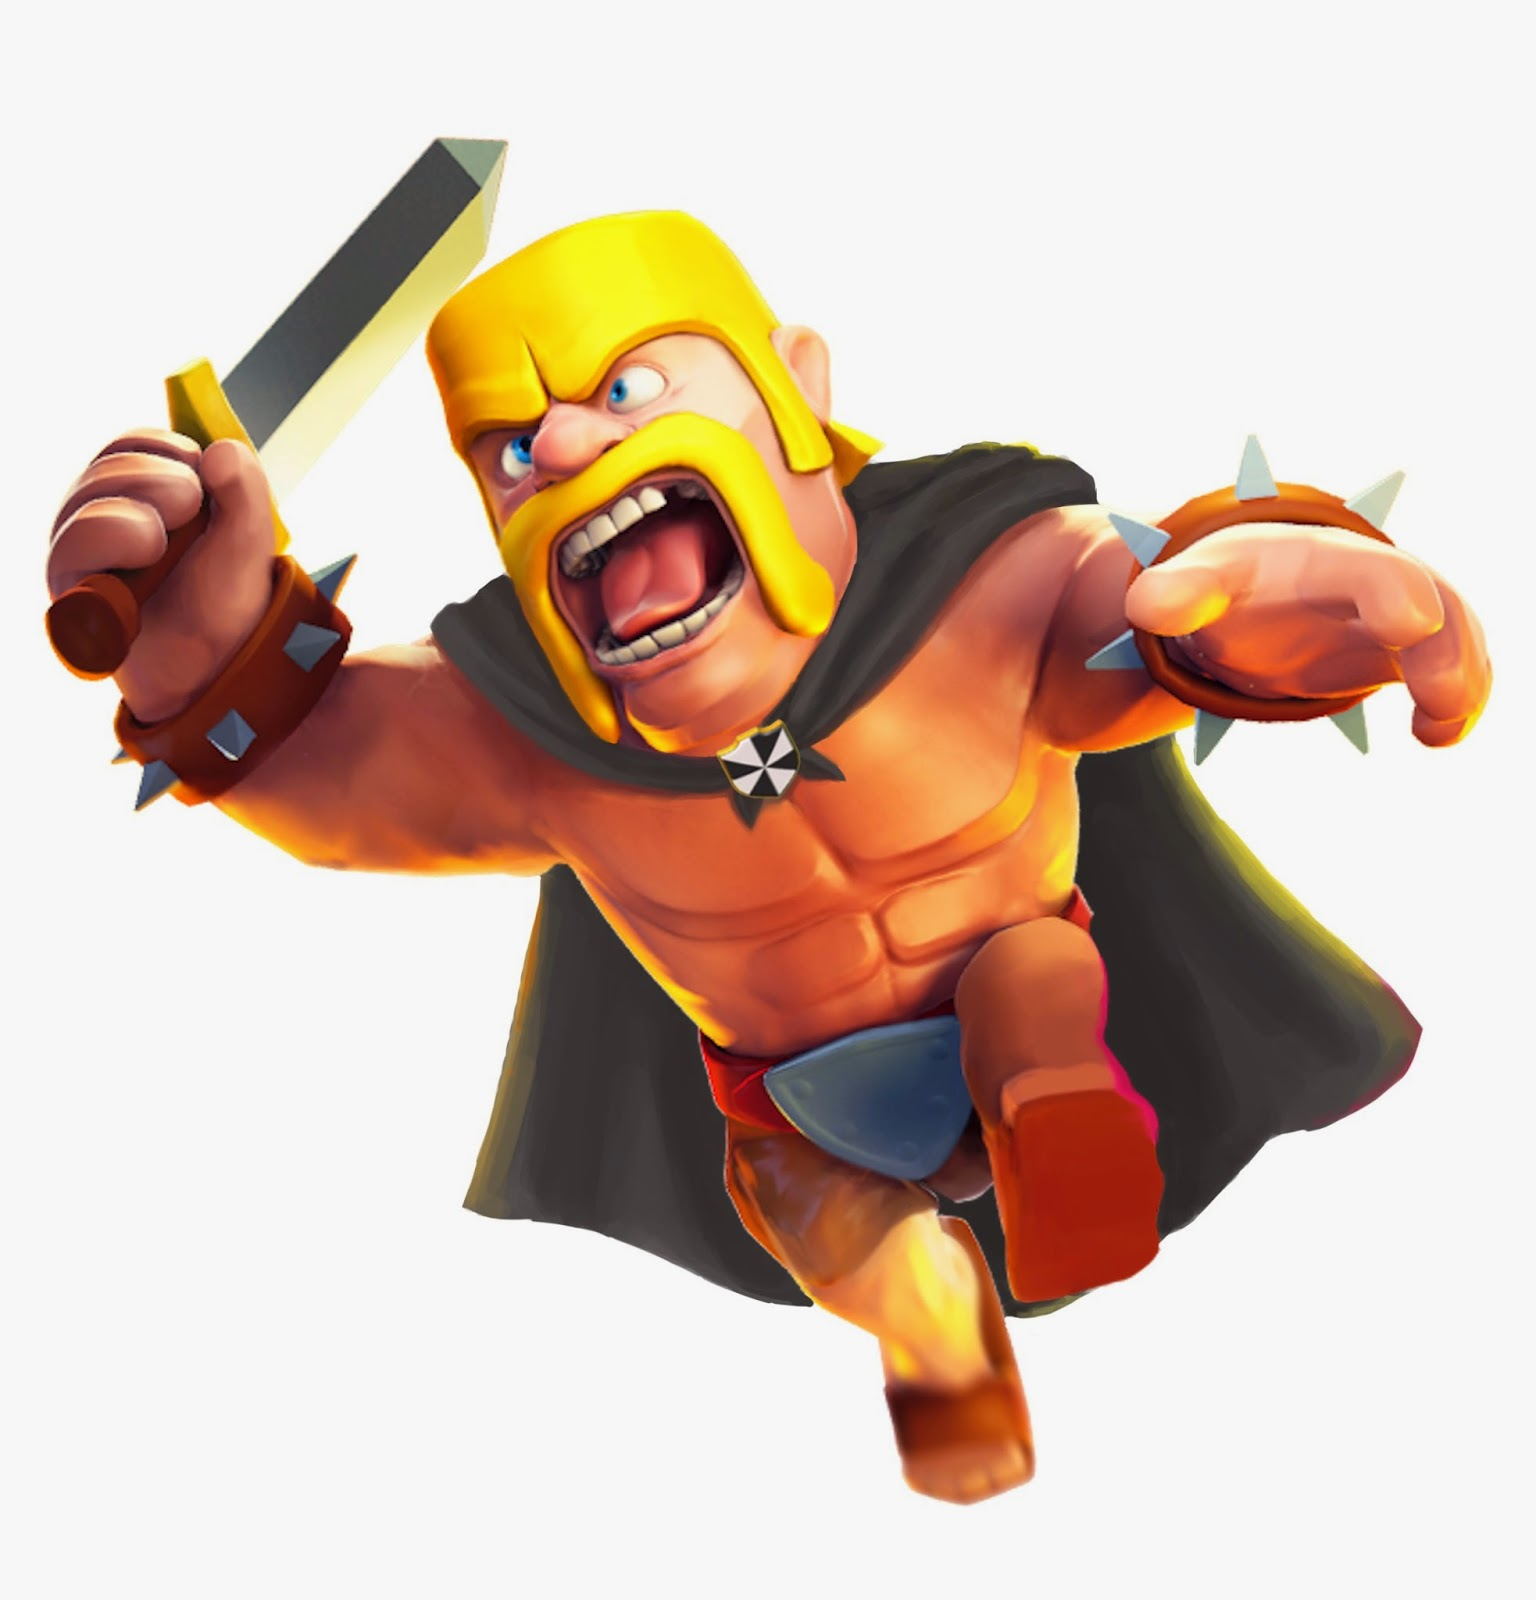 Wallpaper Barbarian Clash of Clan Clash of Clans Barbarian 1536x1600